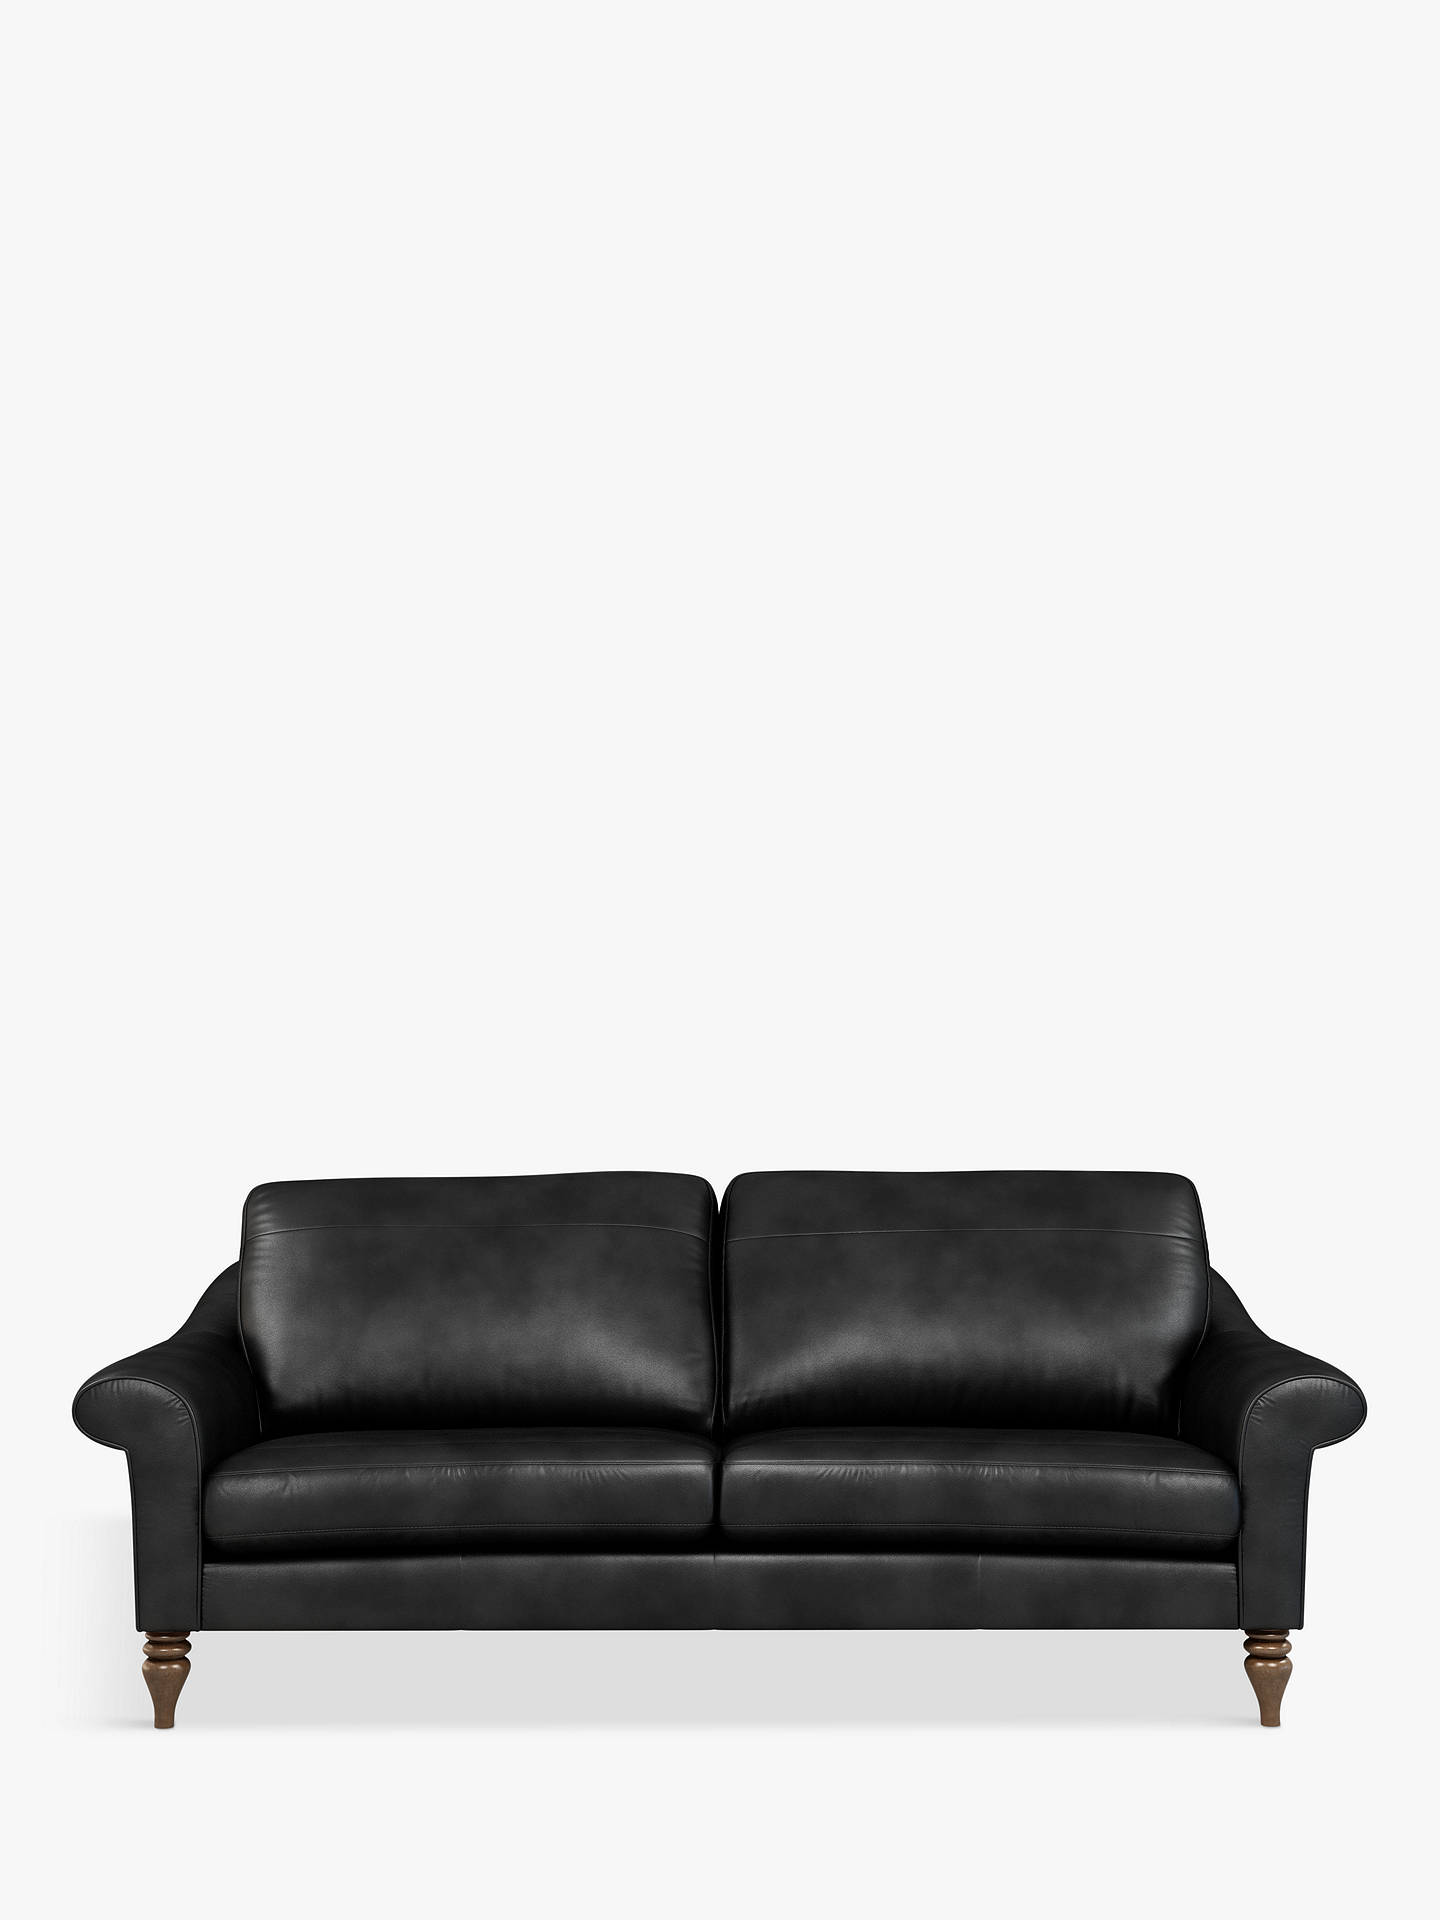 Prime John Lewis Partners Camber Grand 4 Seater Leather Sofa Dark Leg Contempo Black Uwap Interior Chair Design Uwaporg